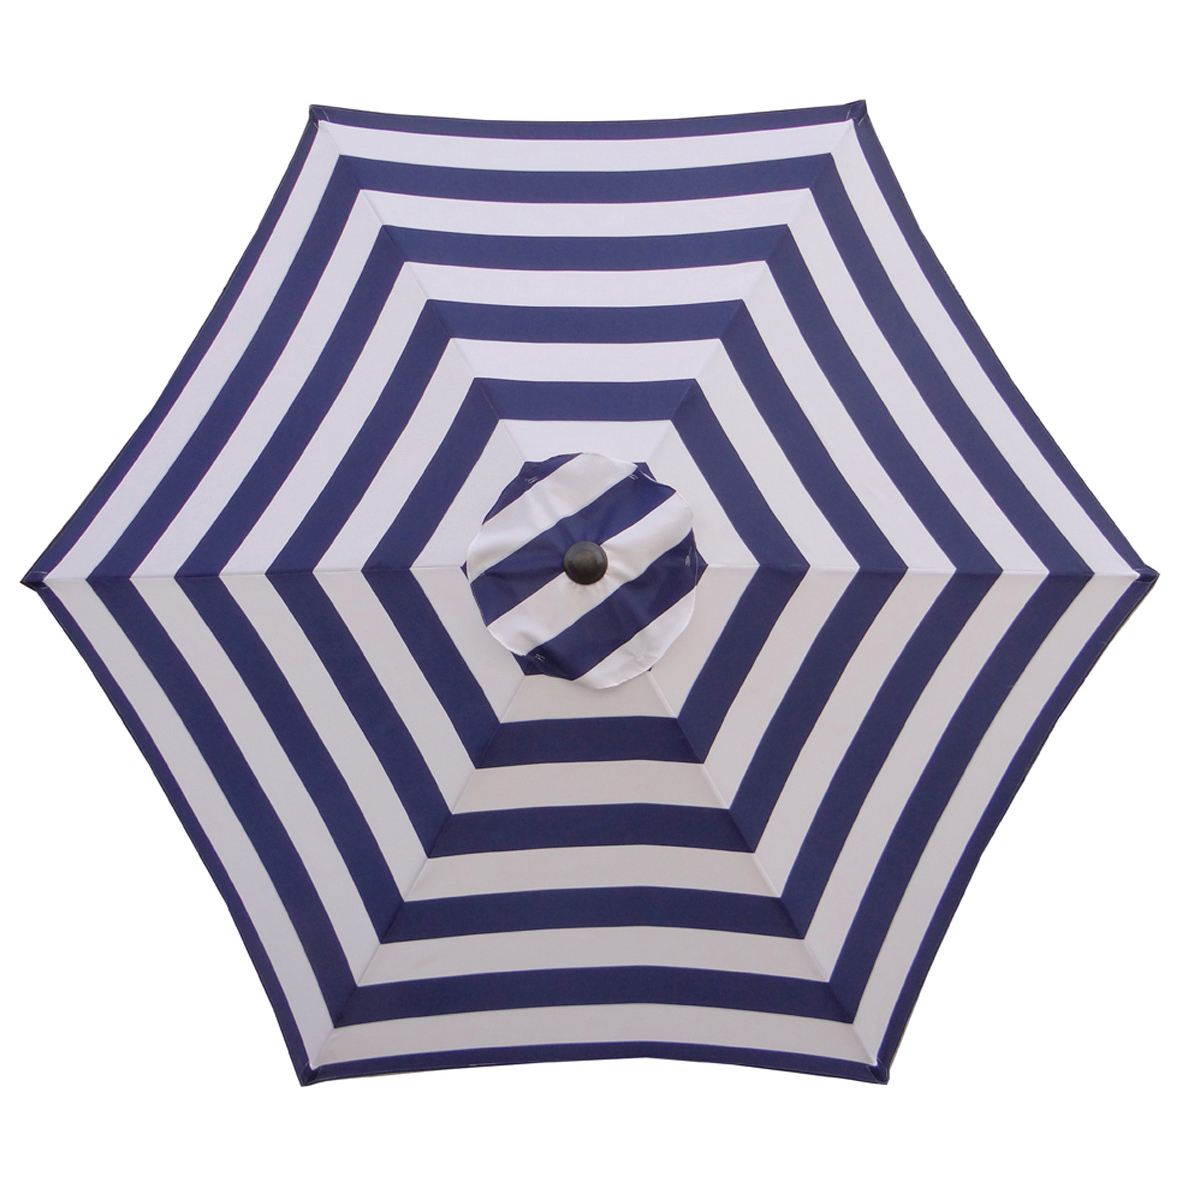 Picture of Seasonal Trends UM90BKOBD18/WT Umbrella, 2.5m/98.43 in H, 8.9 ft ft W Canopy, 8.9 ft ft L Canopy, Round Canopy